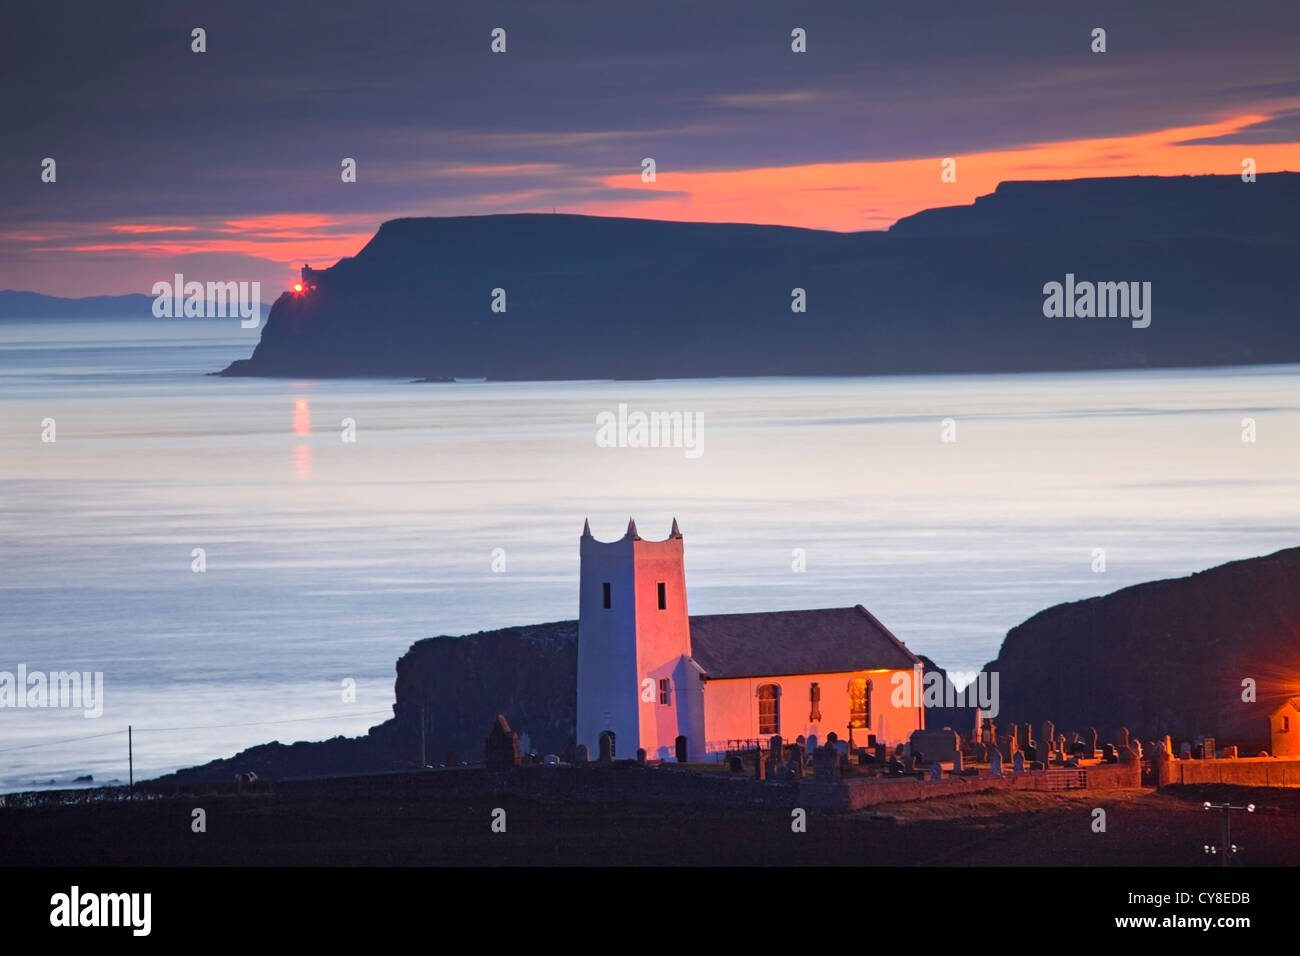 Ballintoy Church captured at Dawn. Co Antrim, Northern Ireland. - Stock Image